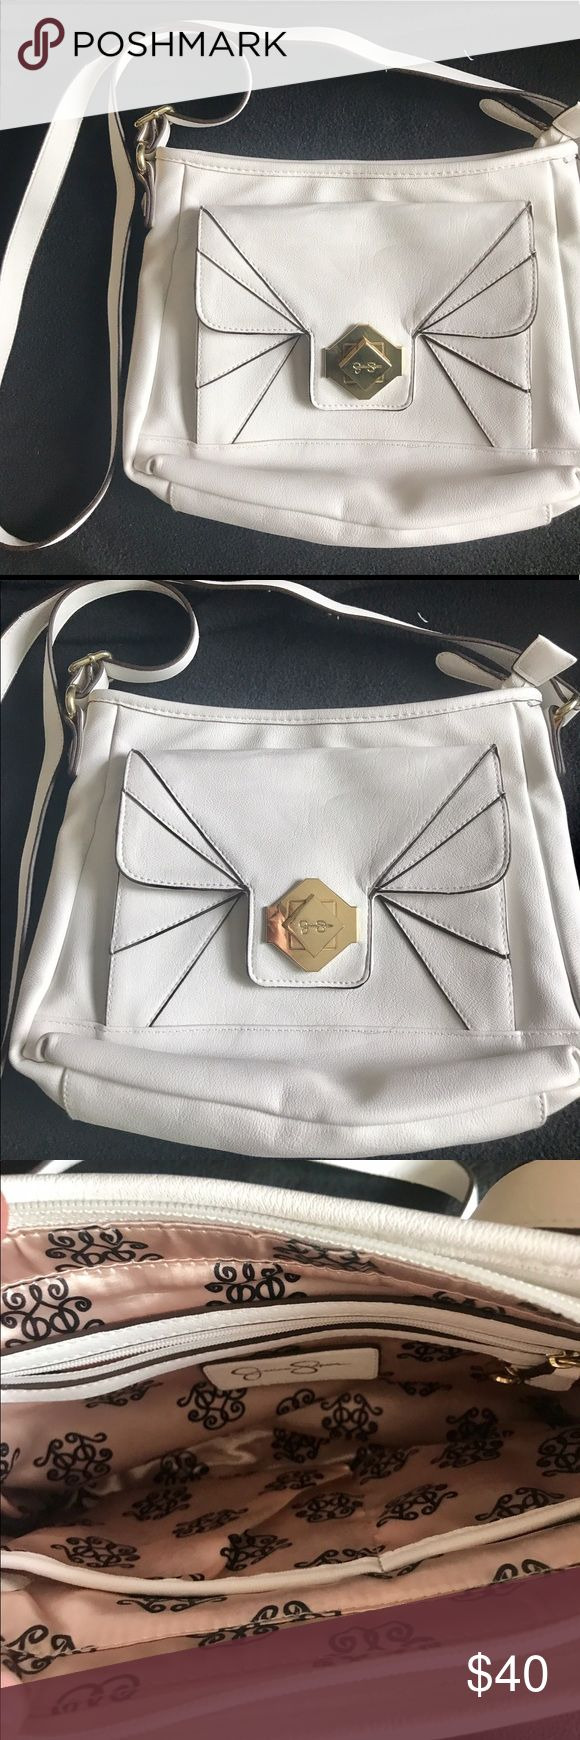 "NWOT Jessica Simpson Cross Body Purse--White NWOT--Bought for a wedding but it didn't match my outfit, so it has never been used. White Jessica Simpson Cross Body Purse. Has front pocket with gold hardware & outside zipper pocket on other side. Purse has inside zipper pocket as well as 2 other pockets. PU material. 11"" W x 9"" H Jessica Simpson Bags Crossbody Bags"